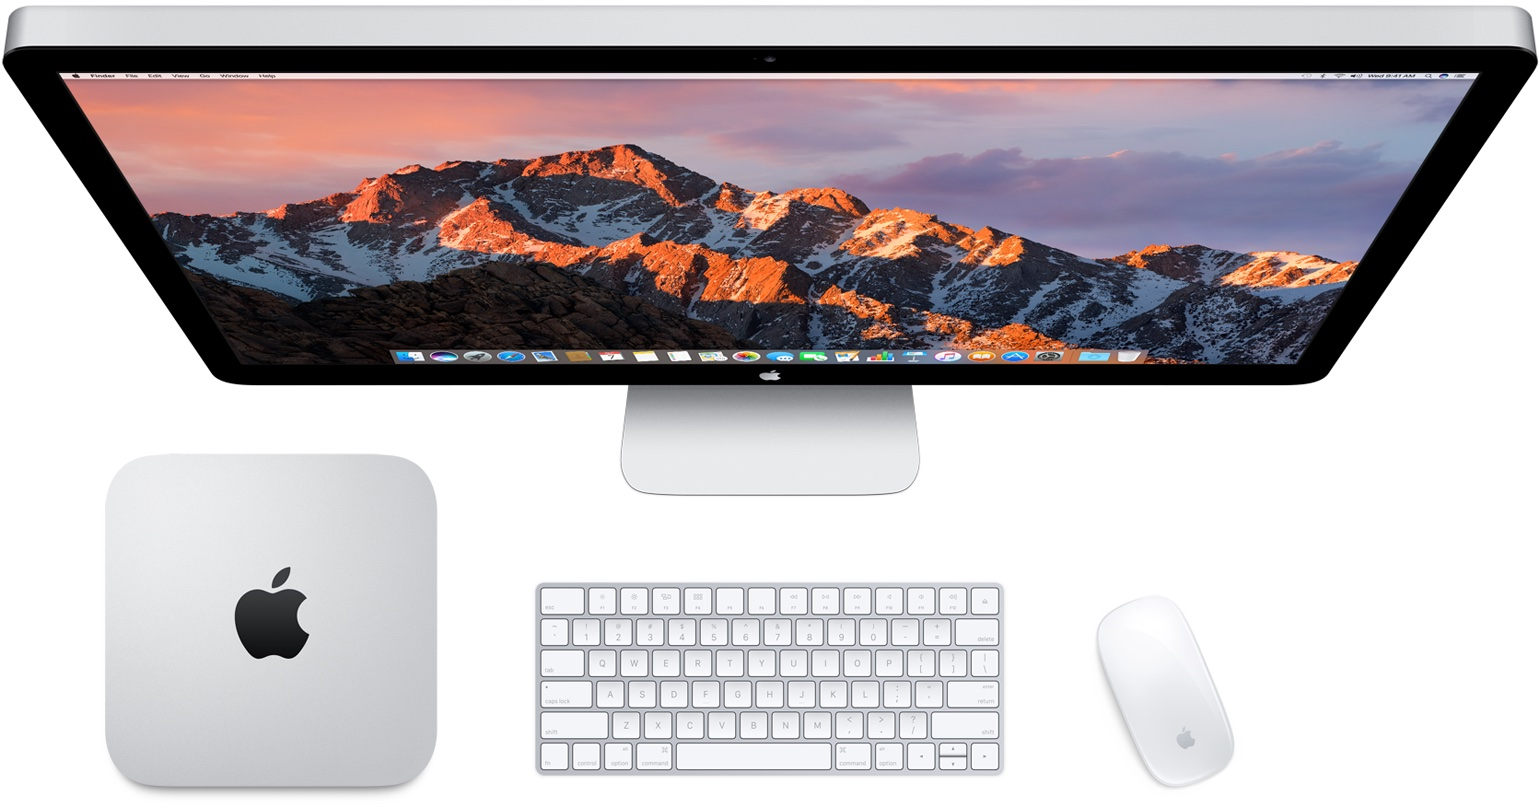 An image depicting an overhead view of an iMac along with a Mac mini, Apple wireless keyboard and mouse